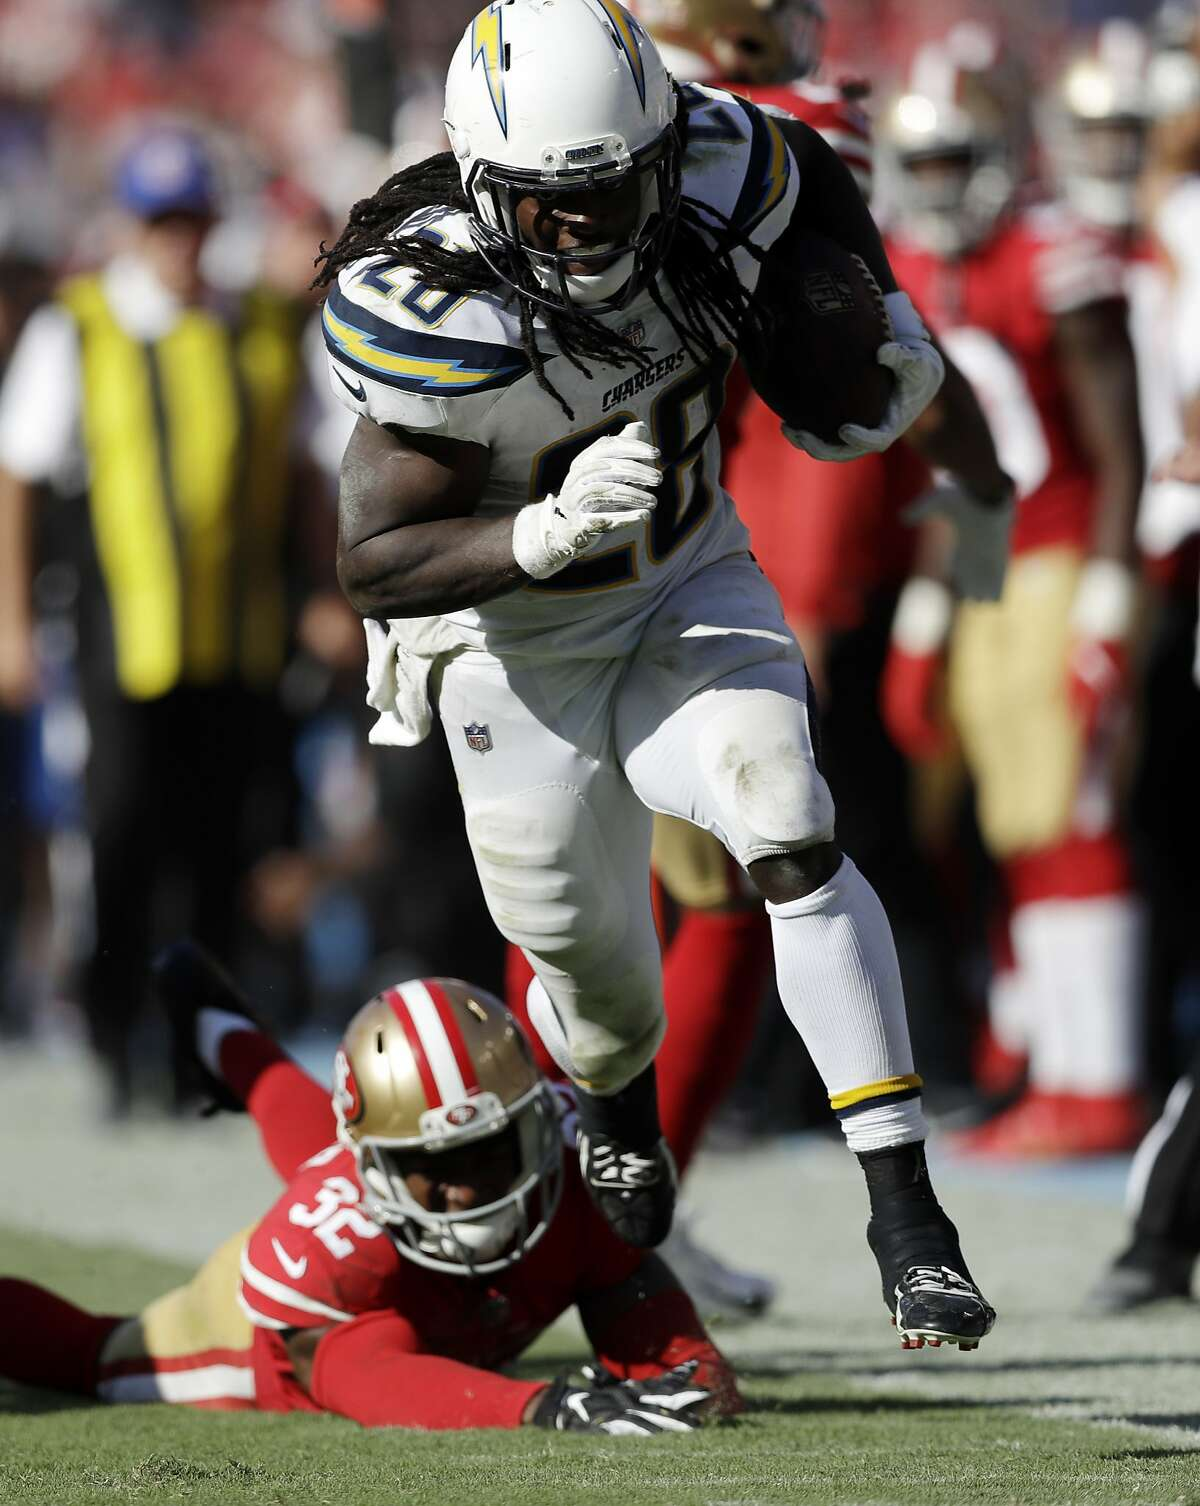 Los Angeles Chargers running back Melvin Gordon, top, escapes a tackle by San Francisco 49ers cornerback D.J. Reed during the second half of an NFL football game, Sunday, Sept. 30, 2018, in Carson, Calif. (AP Photo/Marcio Sanchez)